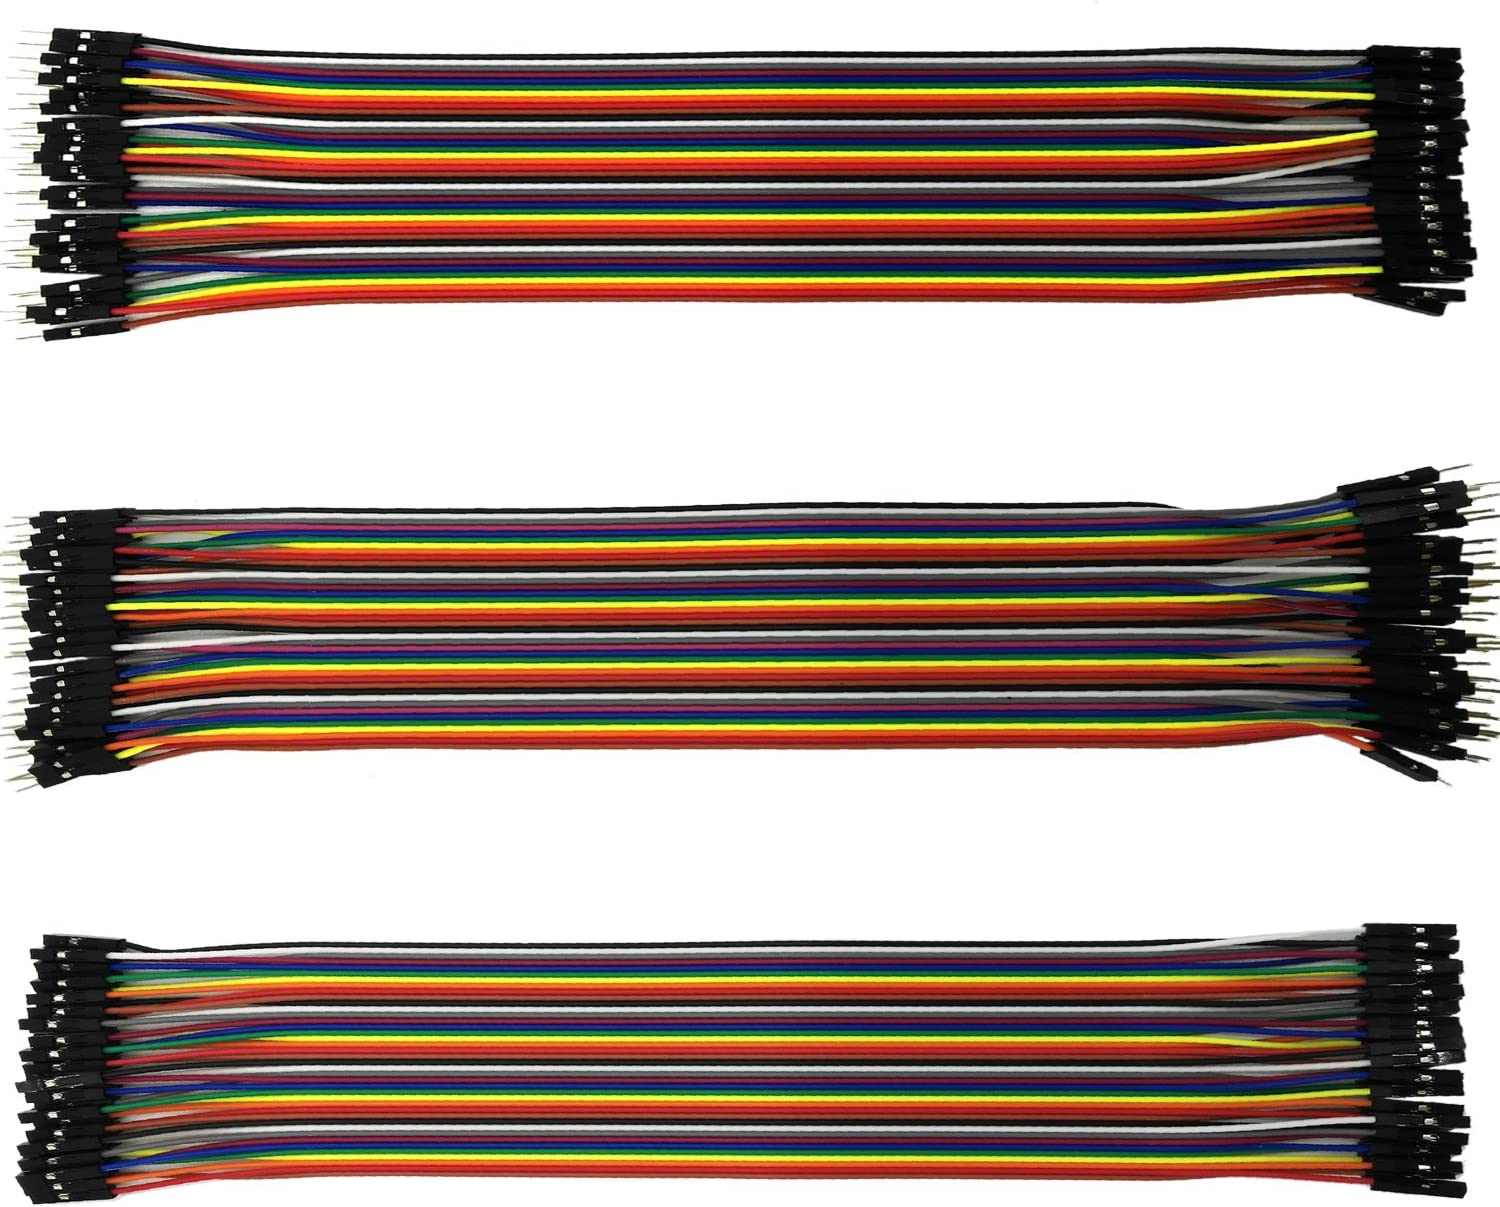 Raspberry Pi Breadboard Jumper Wires Ribbon Cables Kit for Arduino 40pin Male to Female 40pin Female to Female 40pin Male to Male UCEC 360 Pcs Multicolored Jumper Wires